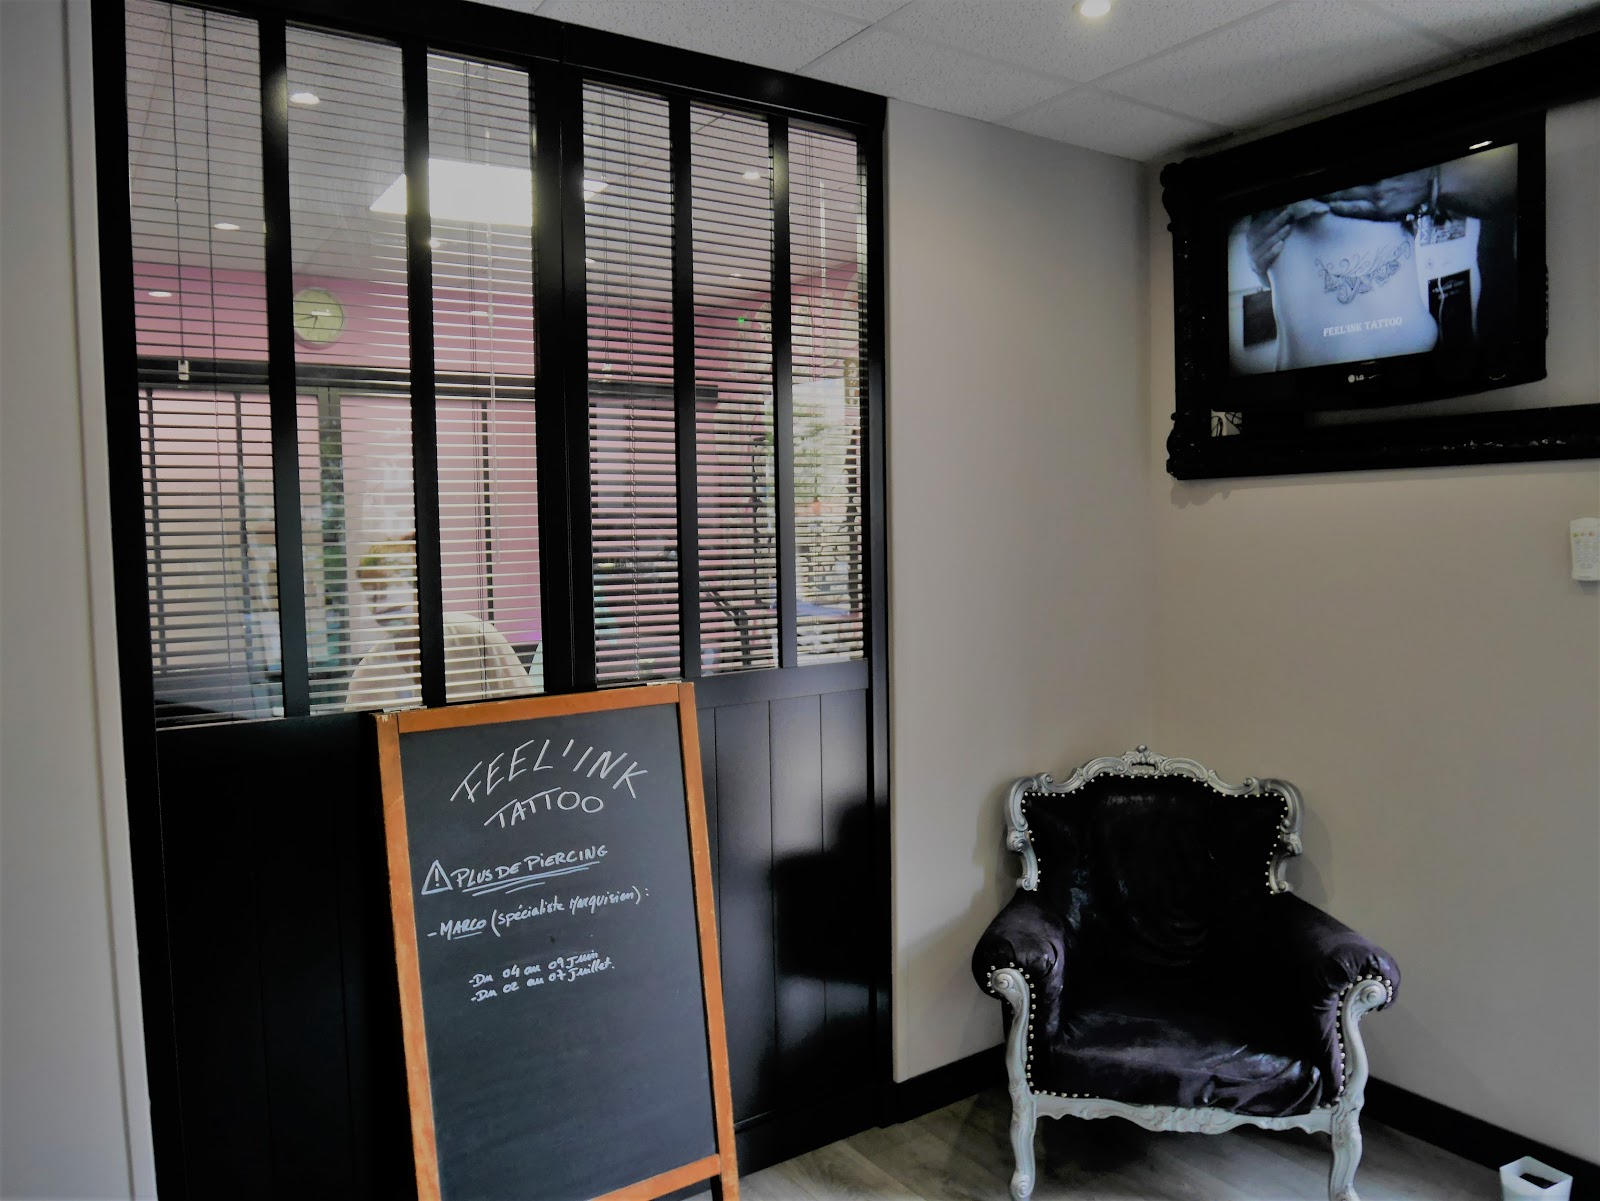 boutique-feel-ink-salon-de-tatouage-le-plessis-robinson-danslaruedacote.fr